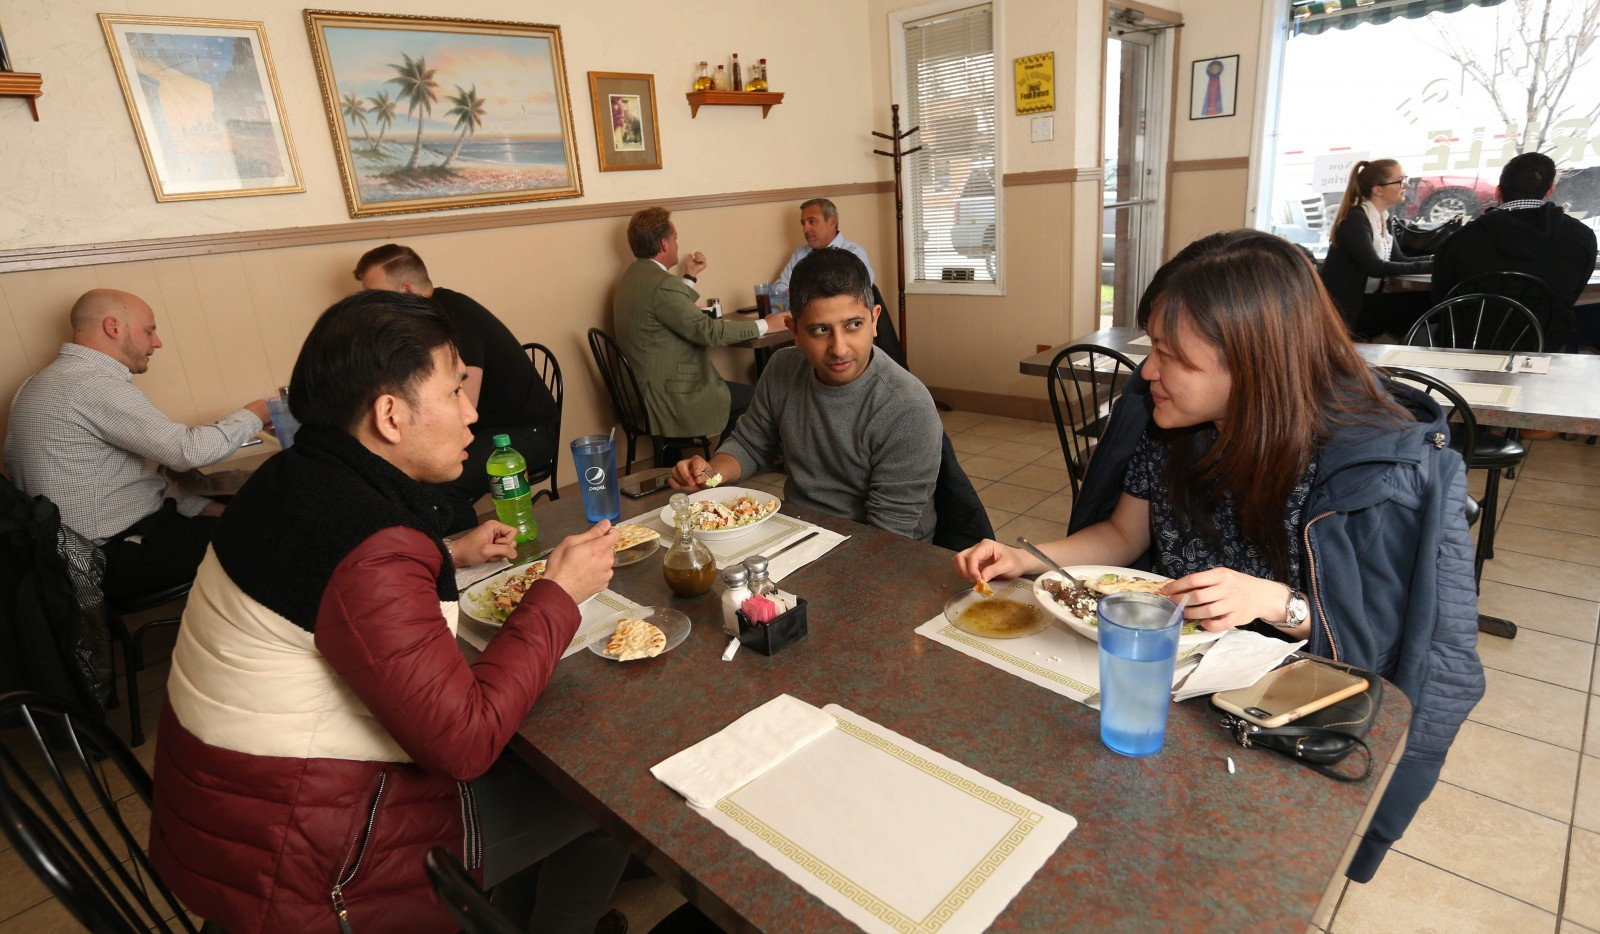 Having lunch at The Village Grille in Williamsville, from left, are Kevin Ng, Abhishek Ehoundiyal and Ann Tan. See a photo gallery at buffalonews.com. (Sharon Cantillon/Buffalo News)